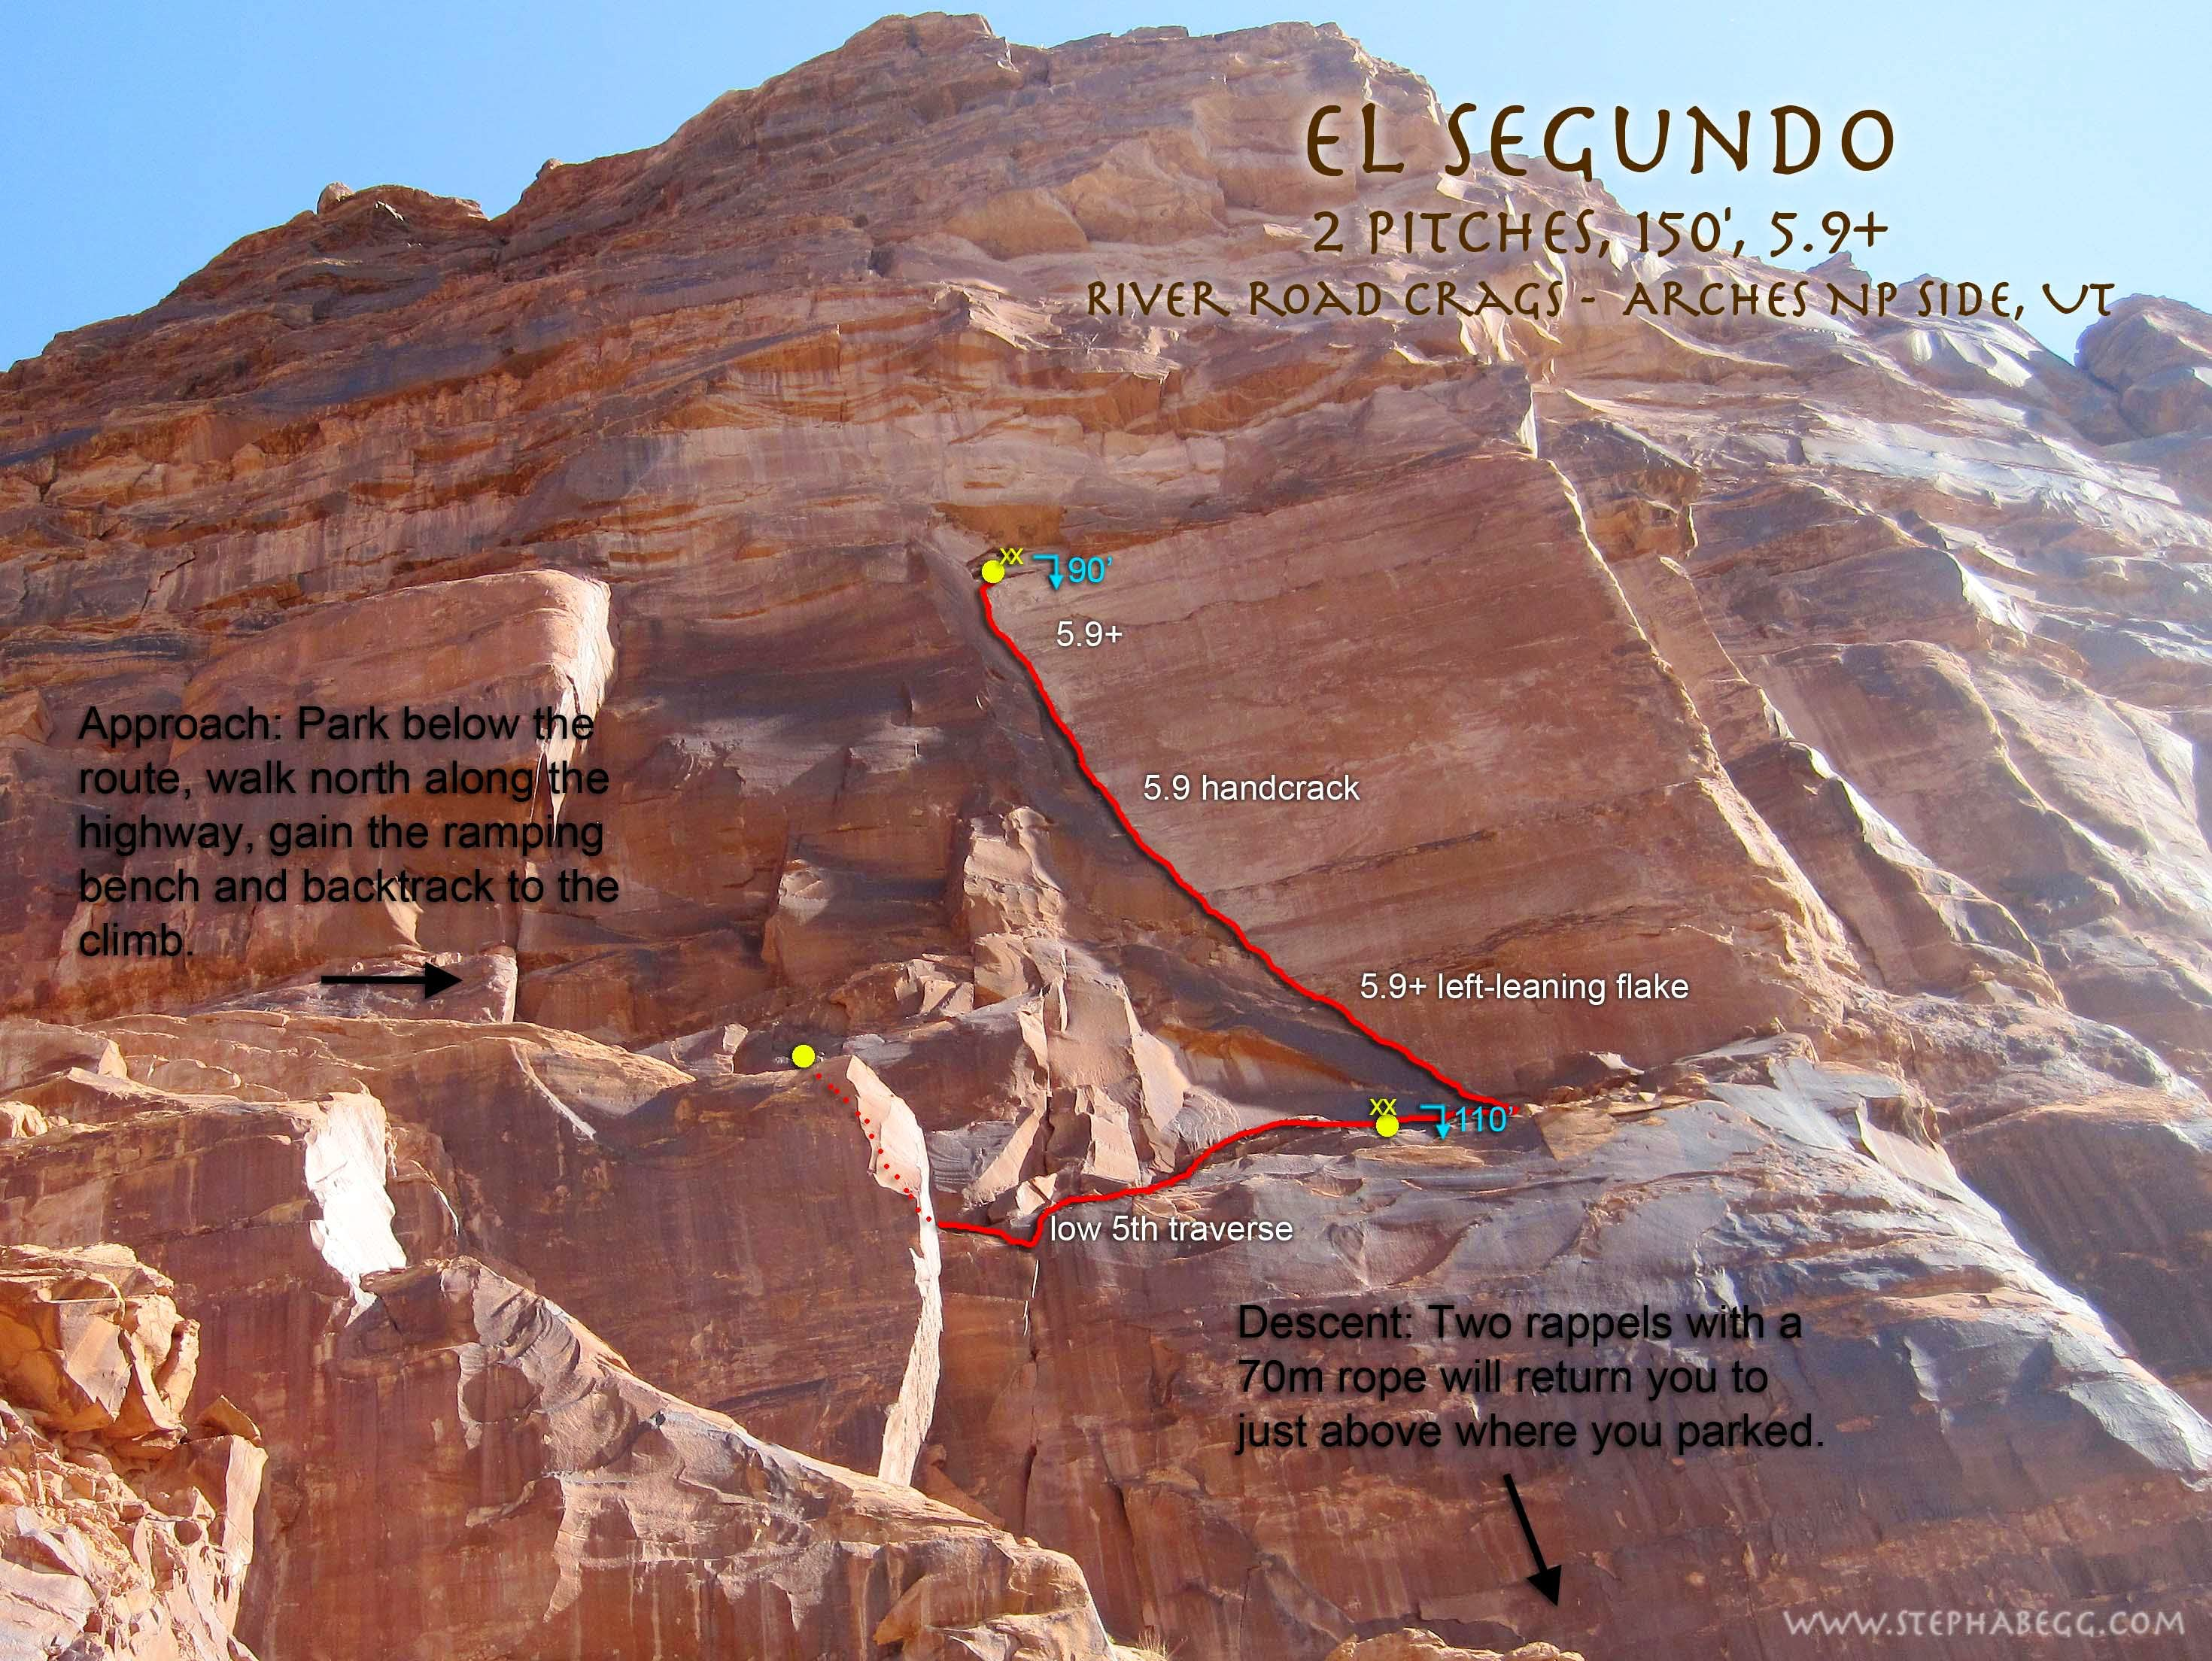 El Segundo, 5.9+, 2 Pitches